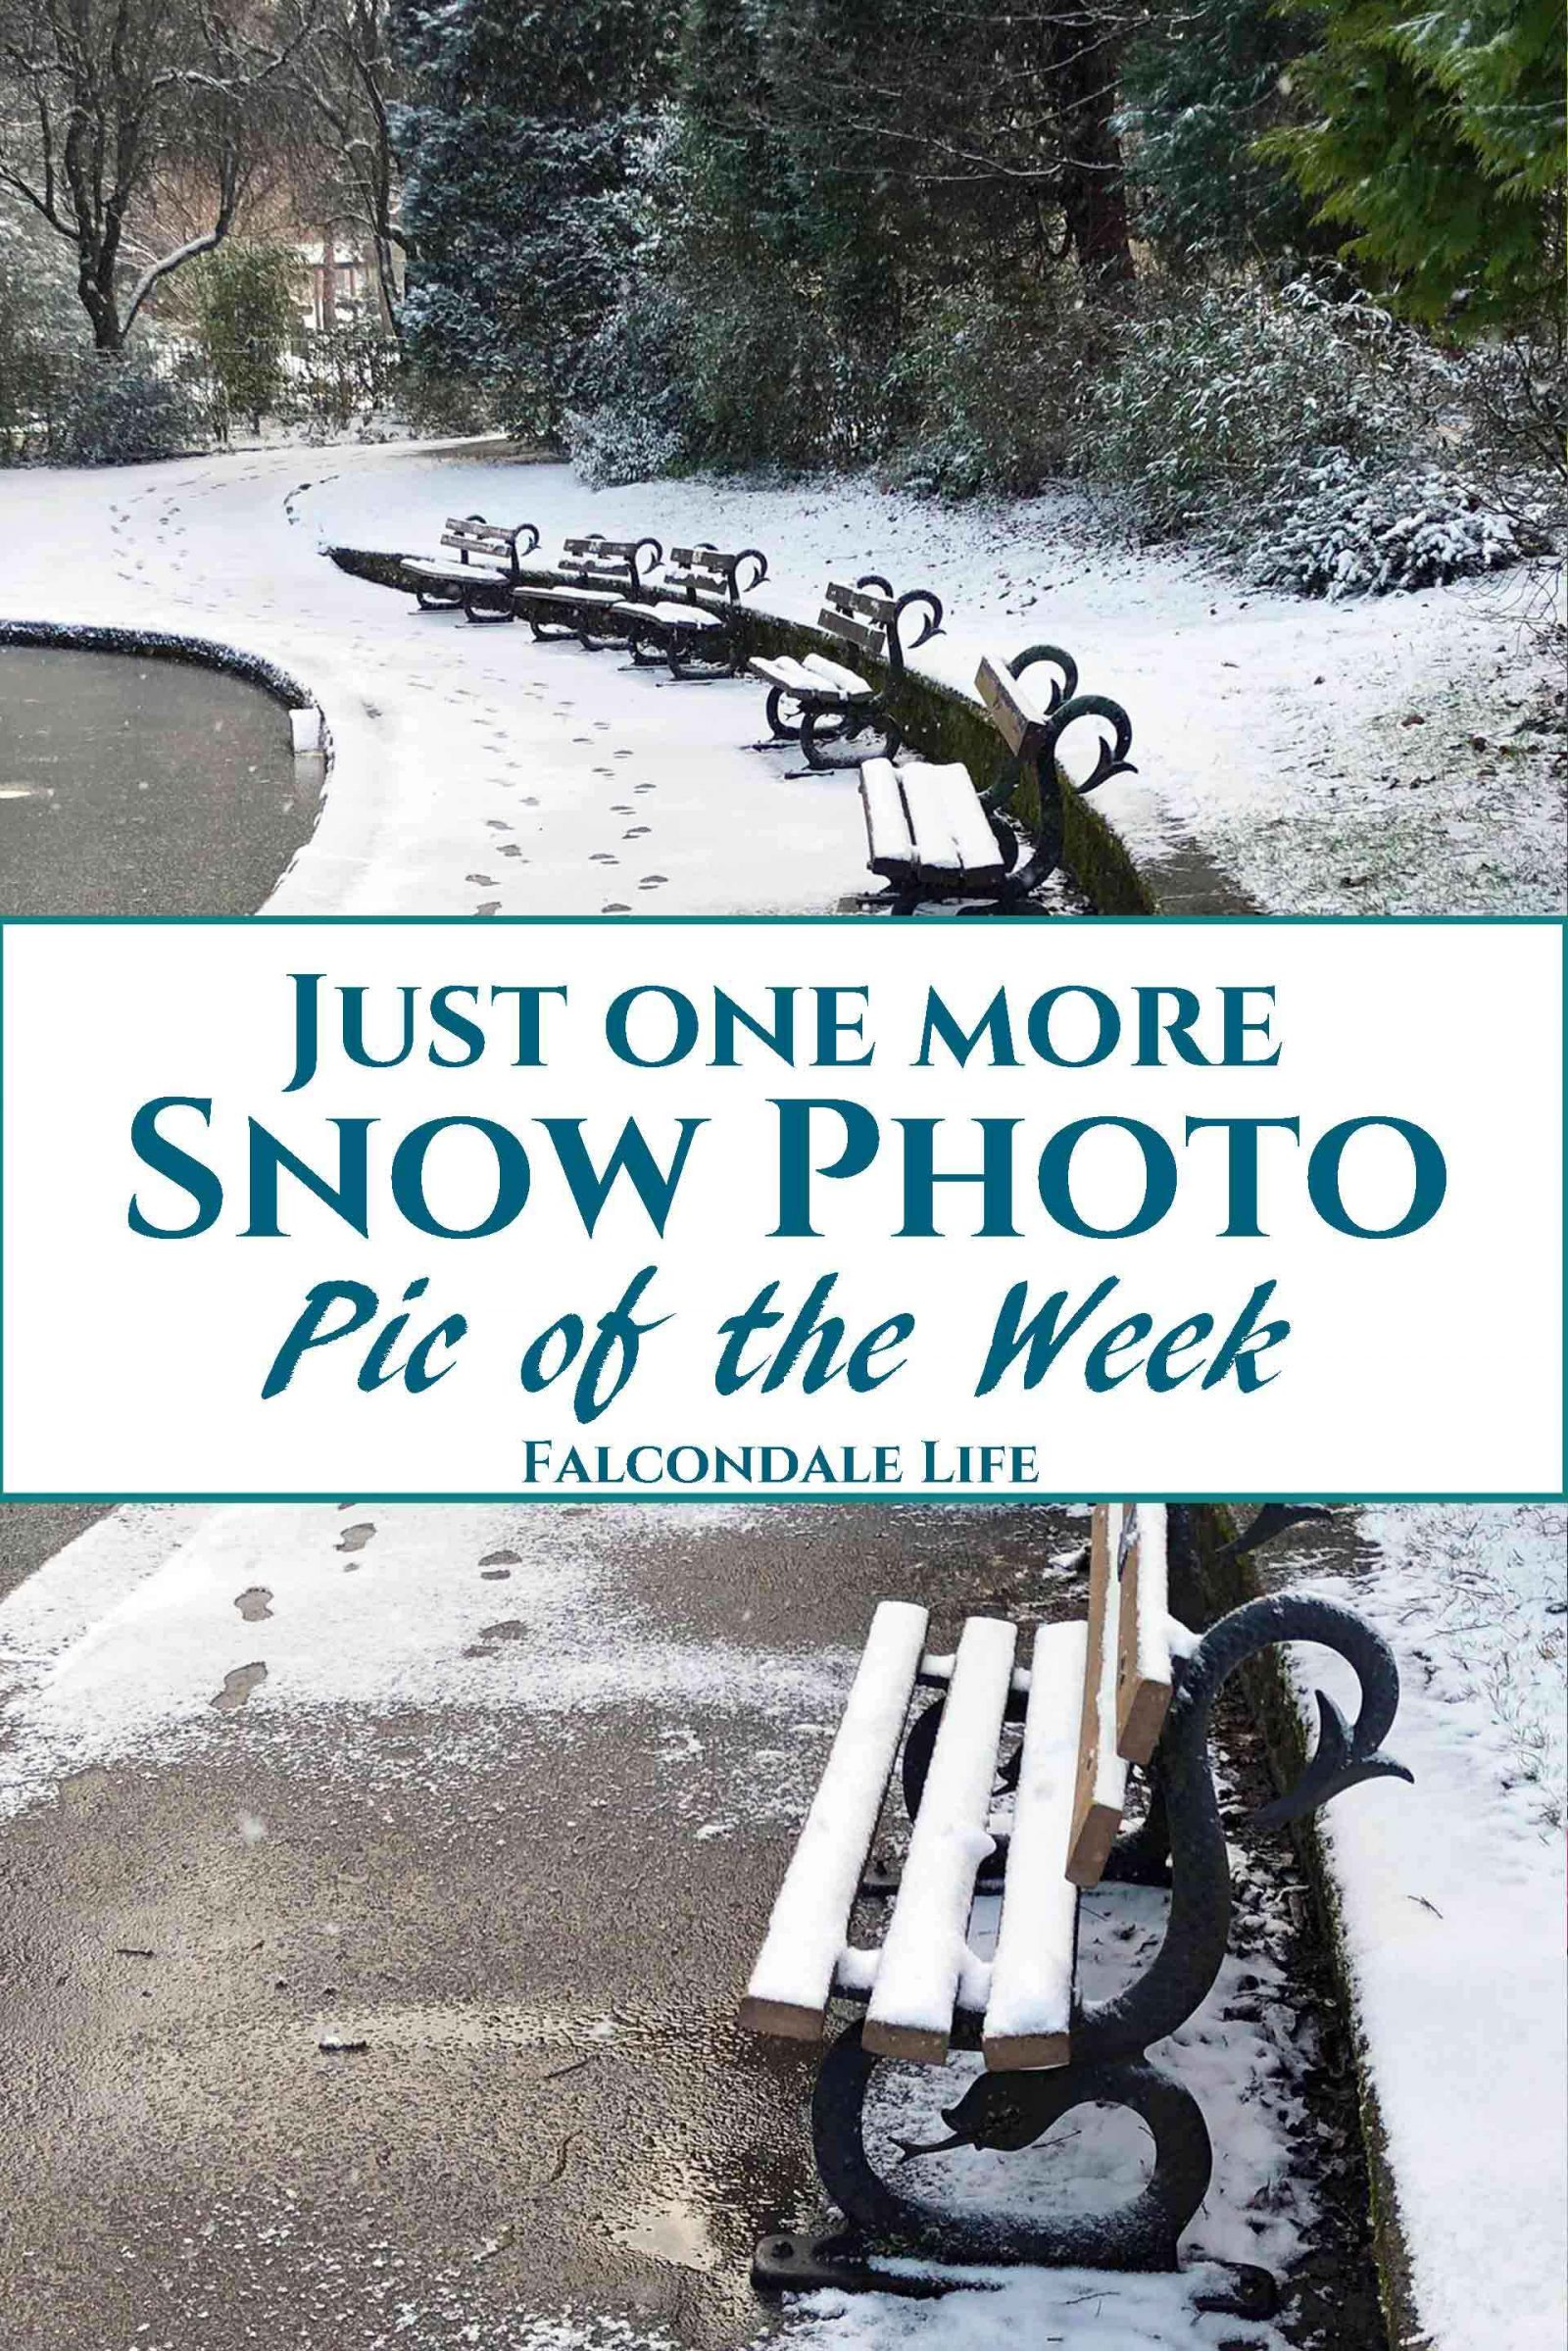 Just one more Snow Photo – Pic of the Week